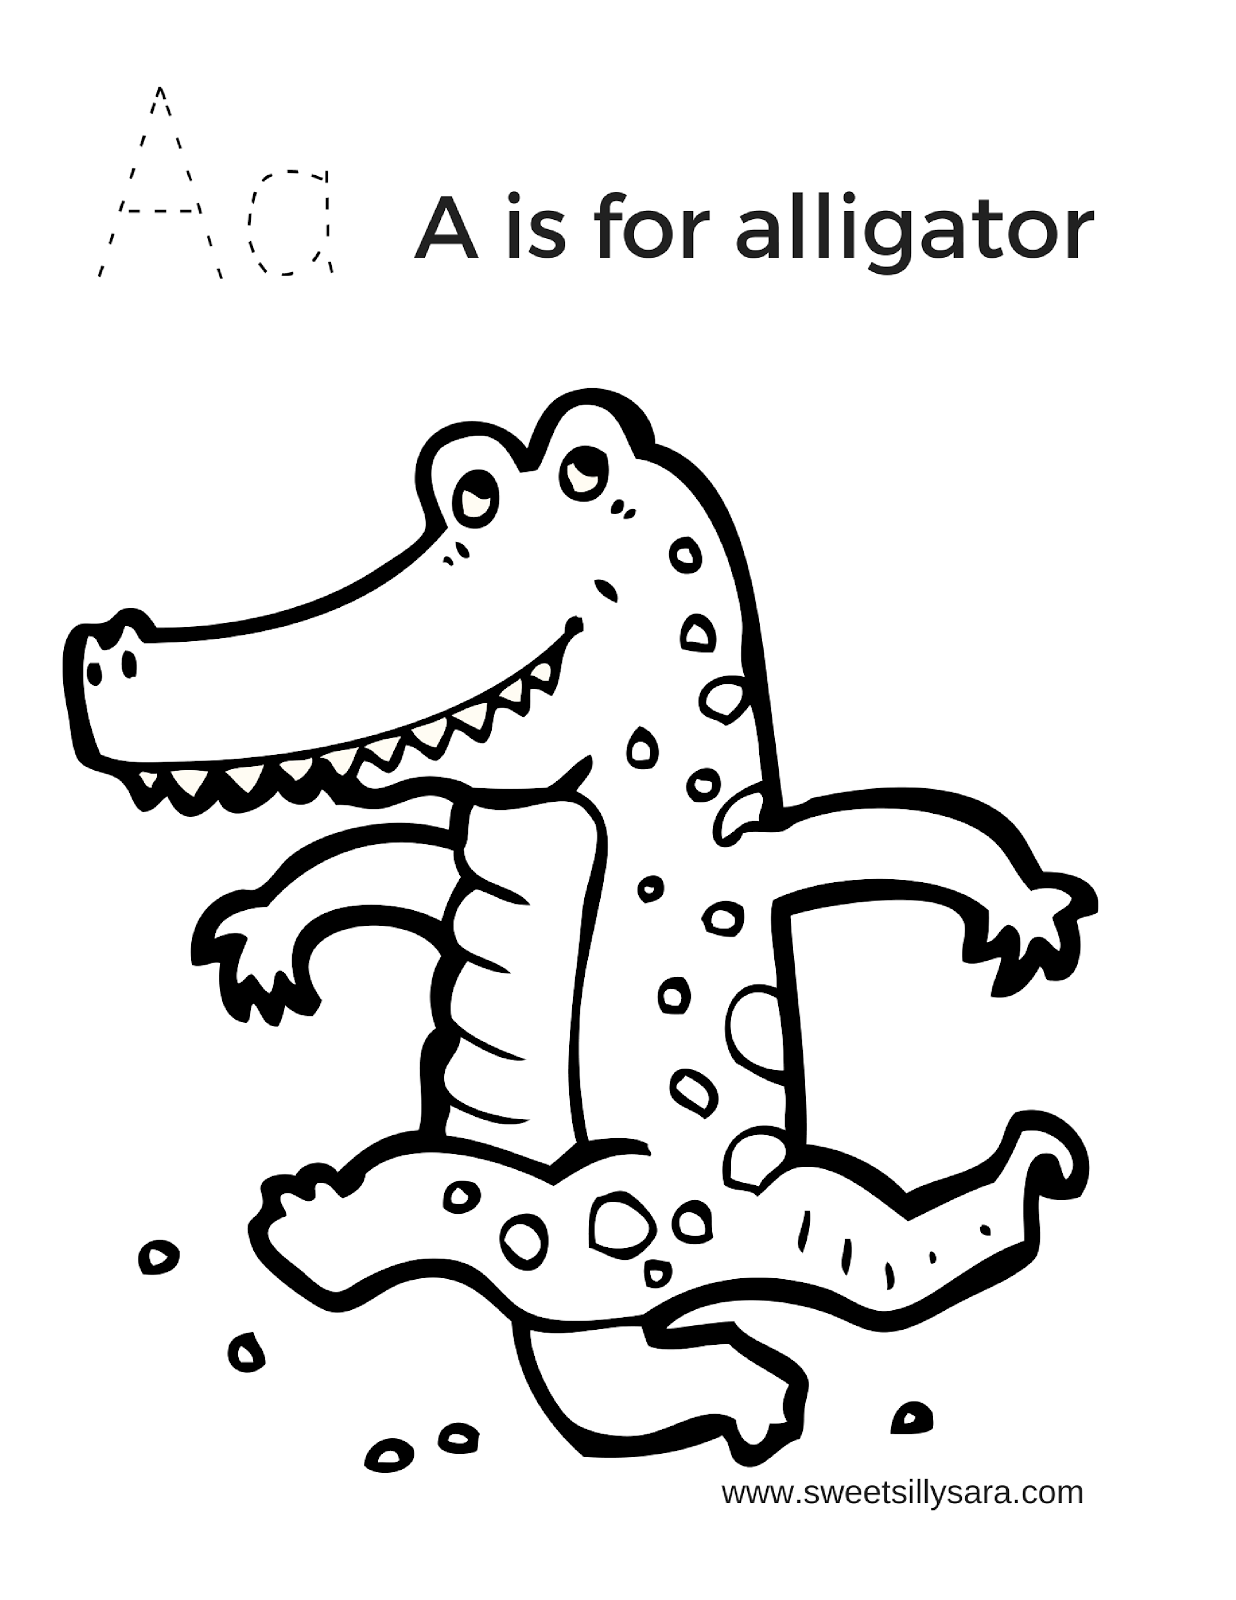 aligator coloring pages sweet silly sara a is for alligator coloring page coloring pages aligator